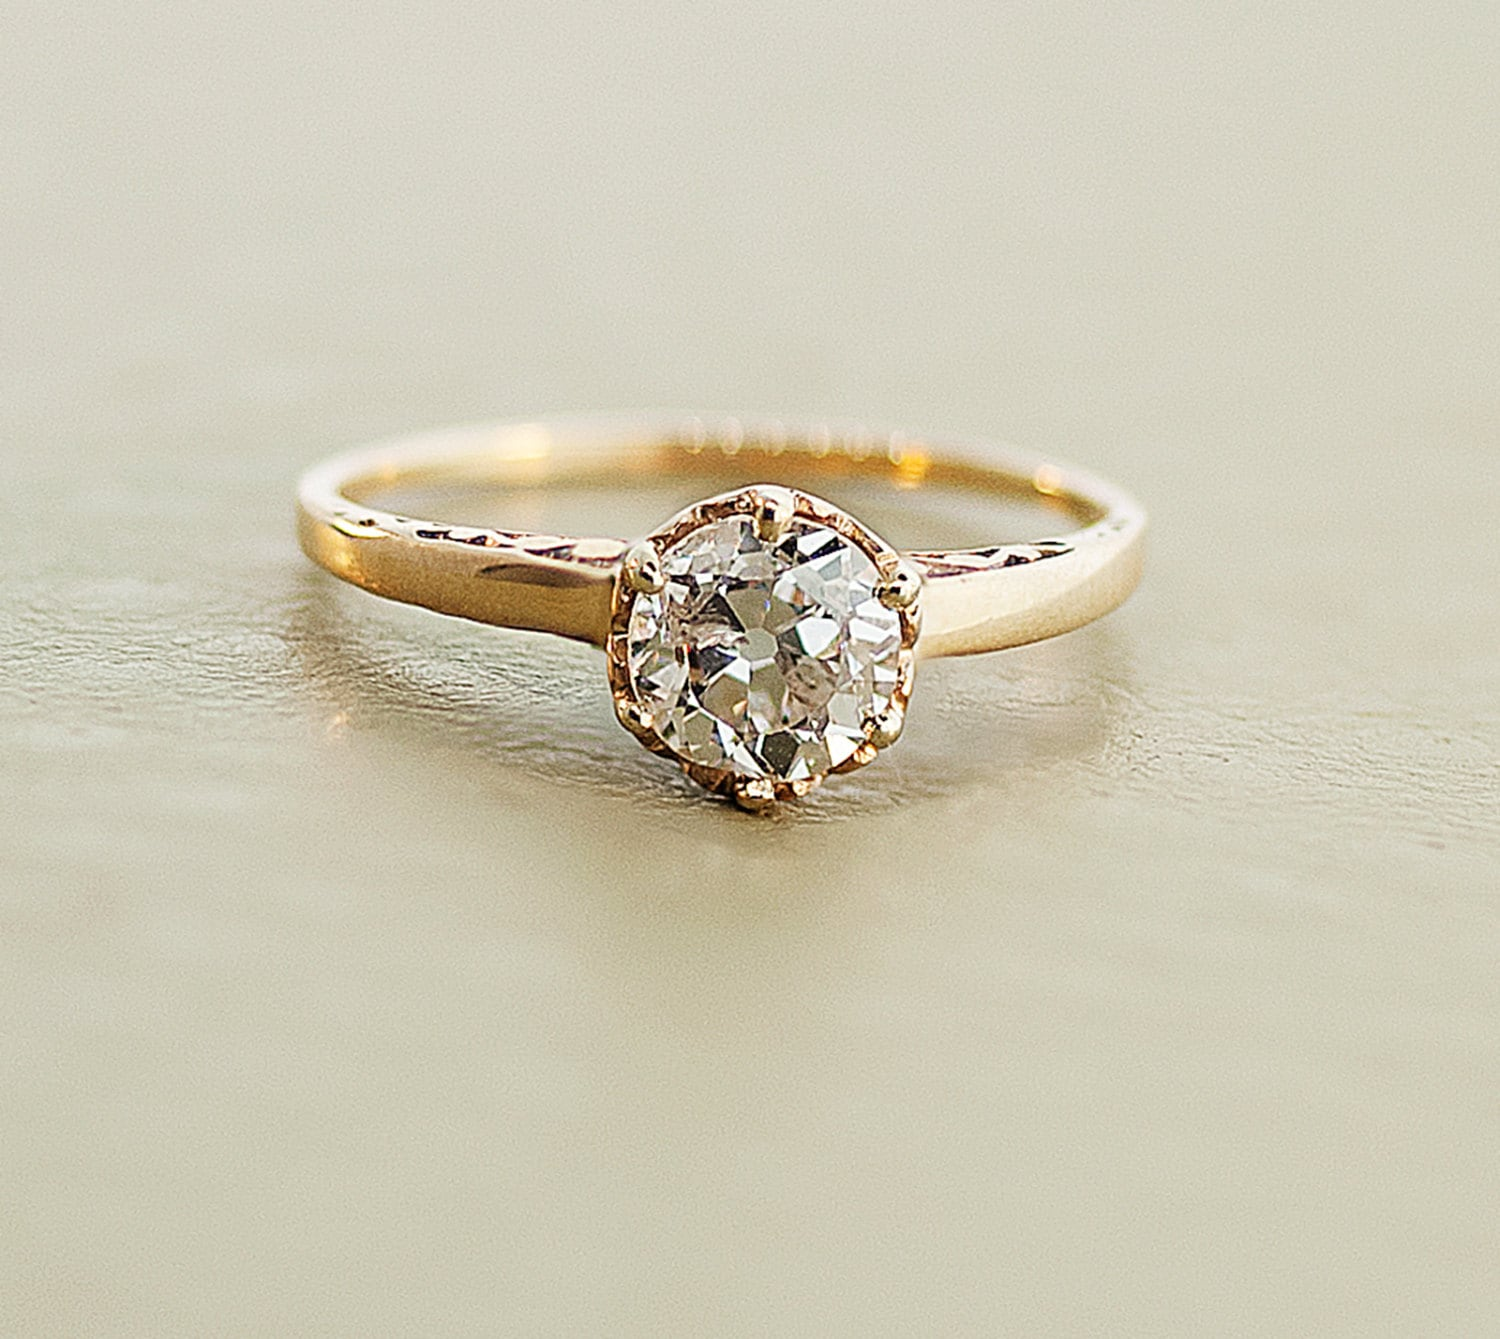 Antique Engagement Ring Rose Gold and Diamond by SITFineJewelry